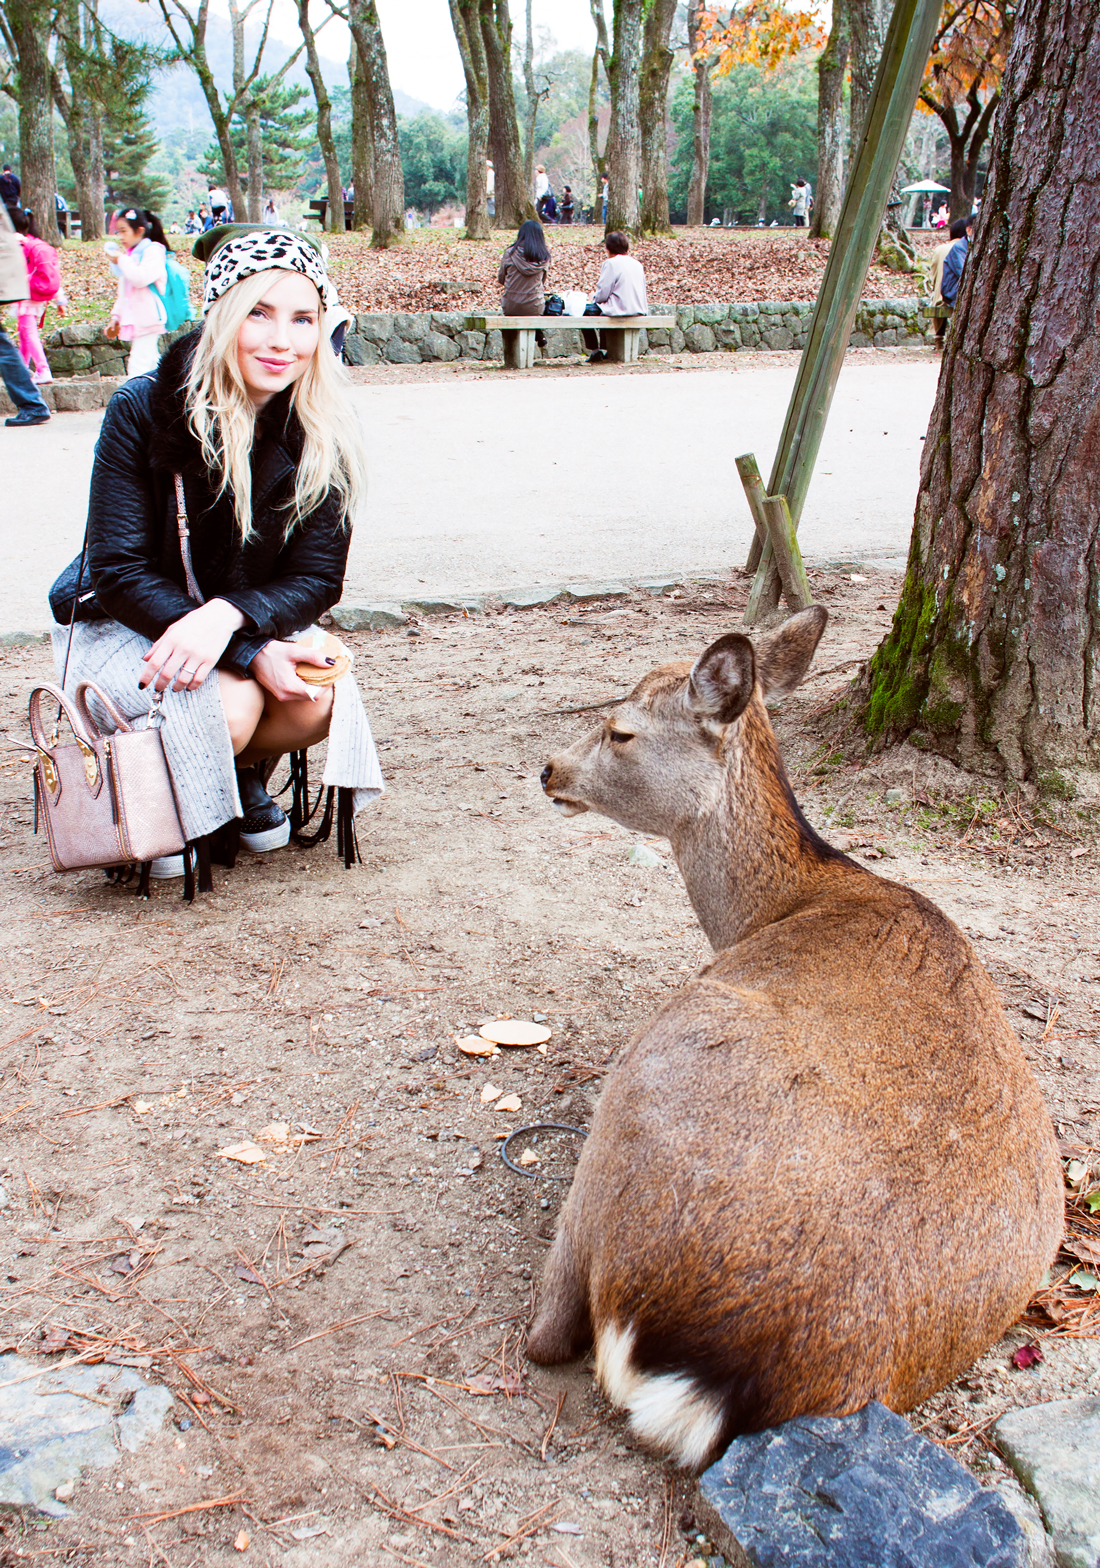 Nara, Japan, Nara Park Japan, Nara park deer, tame deer, japan deer, deer sightseeing, deer park, nara koen, japan touristing, japan sightseeing